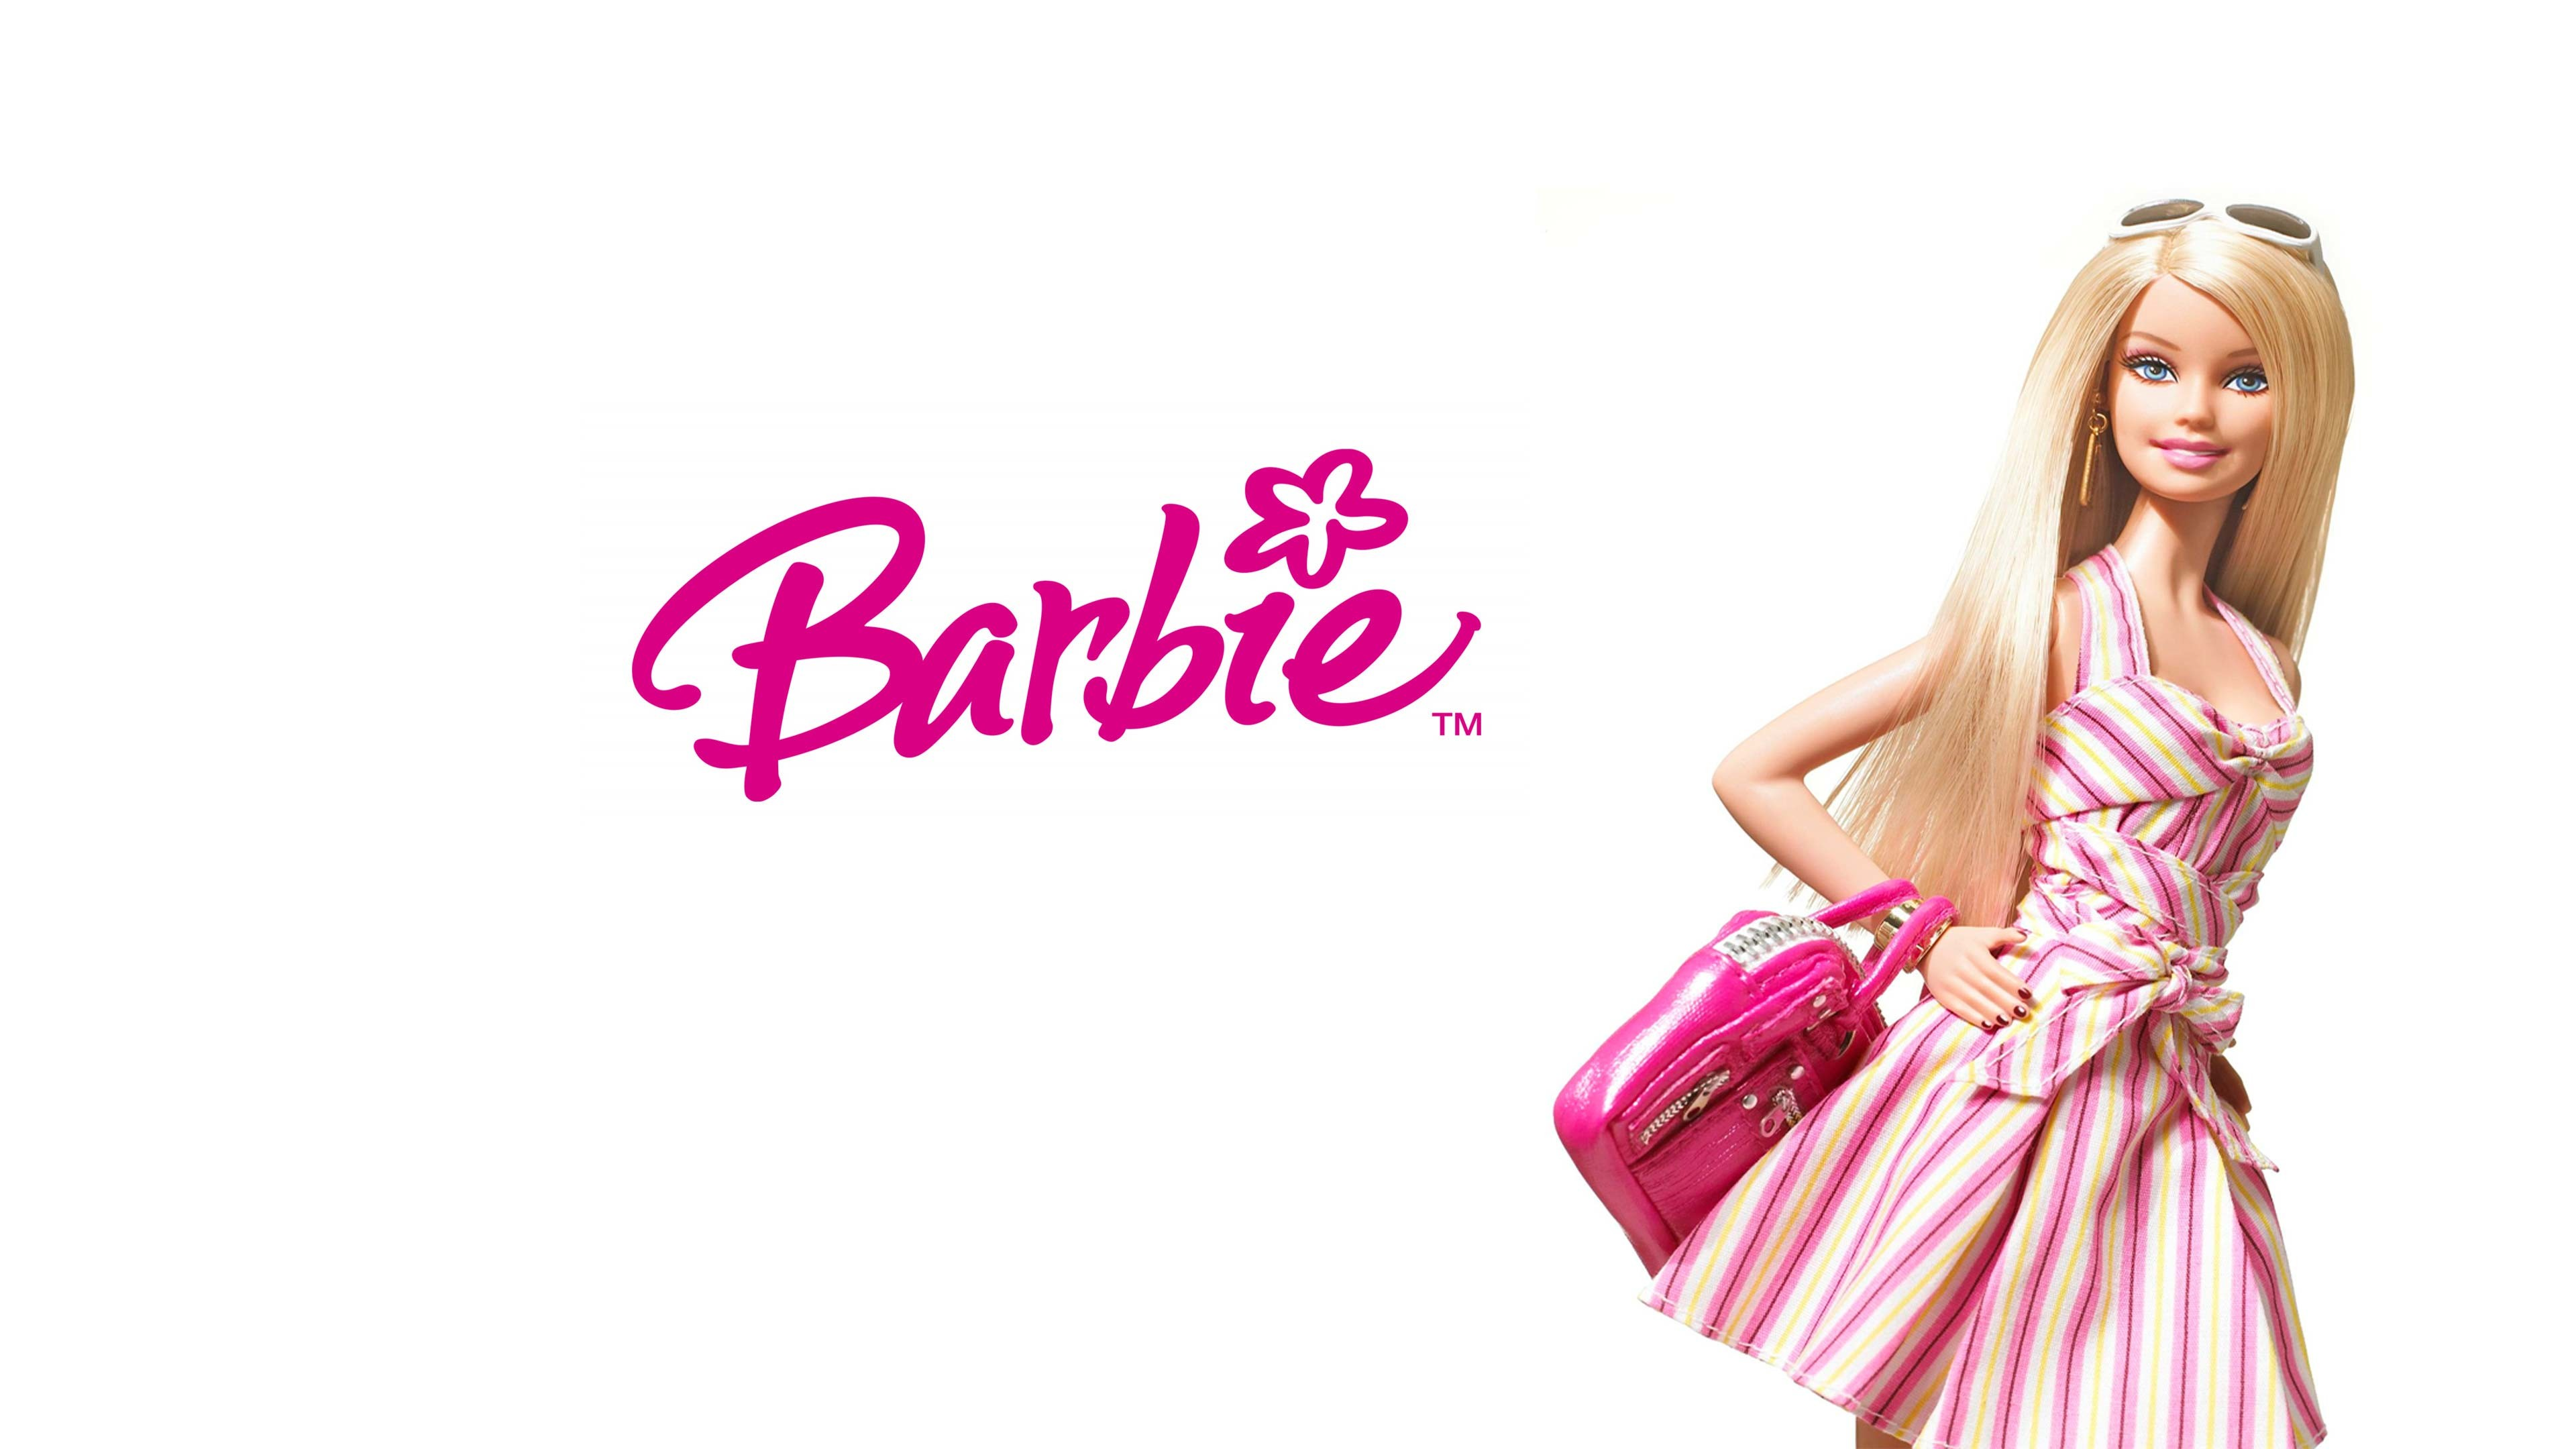 Barbie Wallpaper Hd: Barbie Wallpaper ·① WallpaperTag